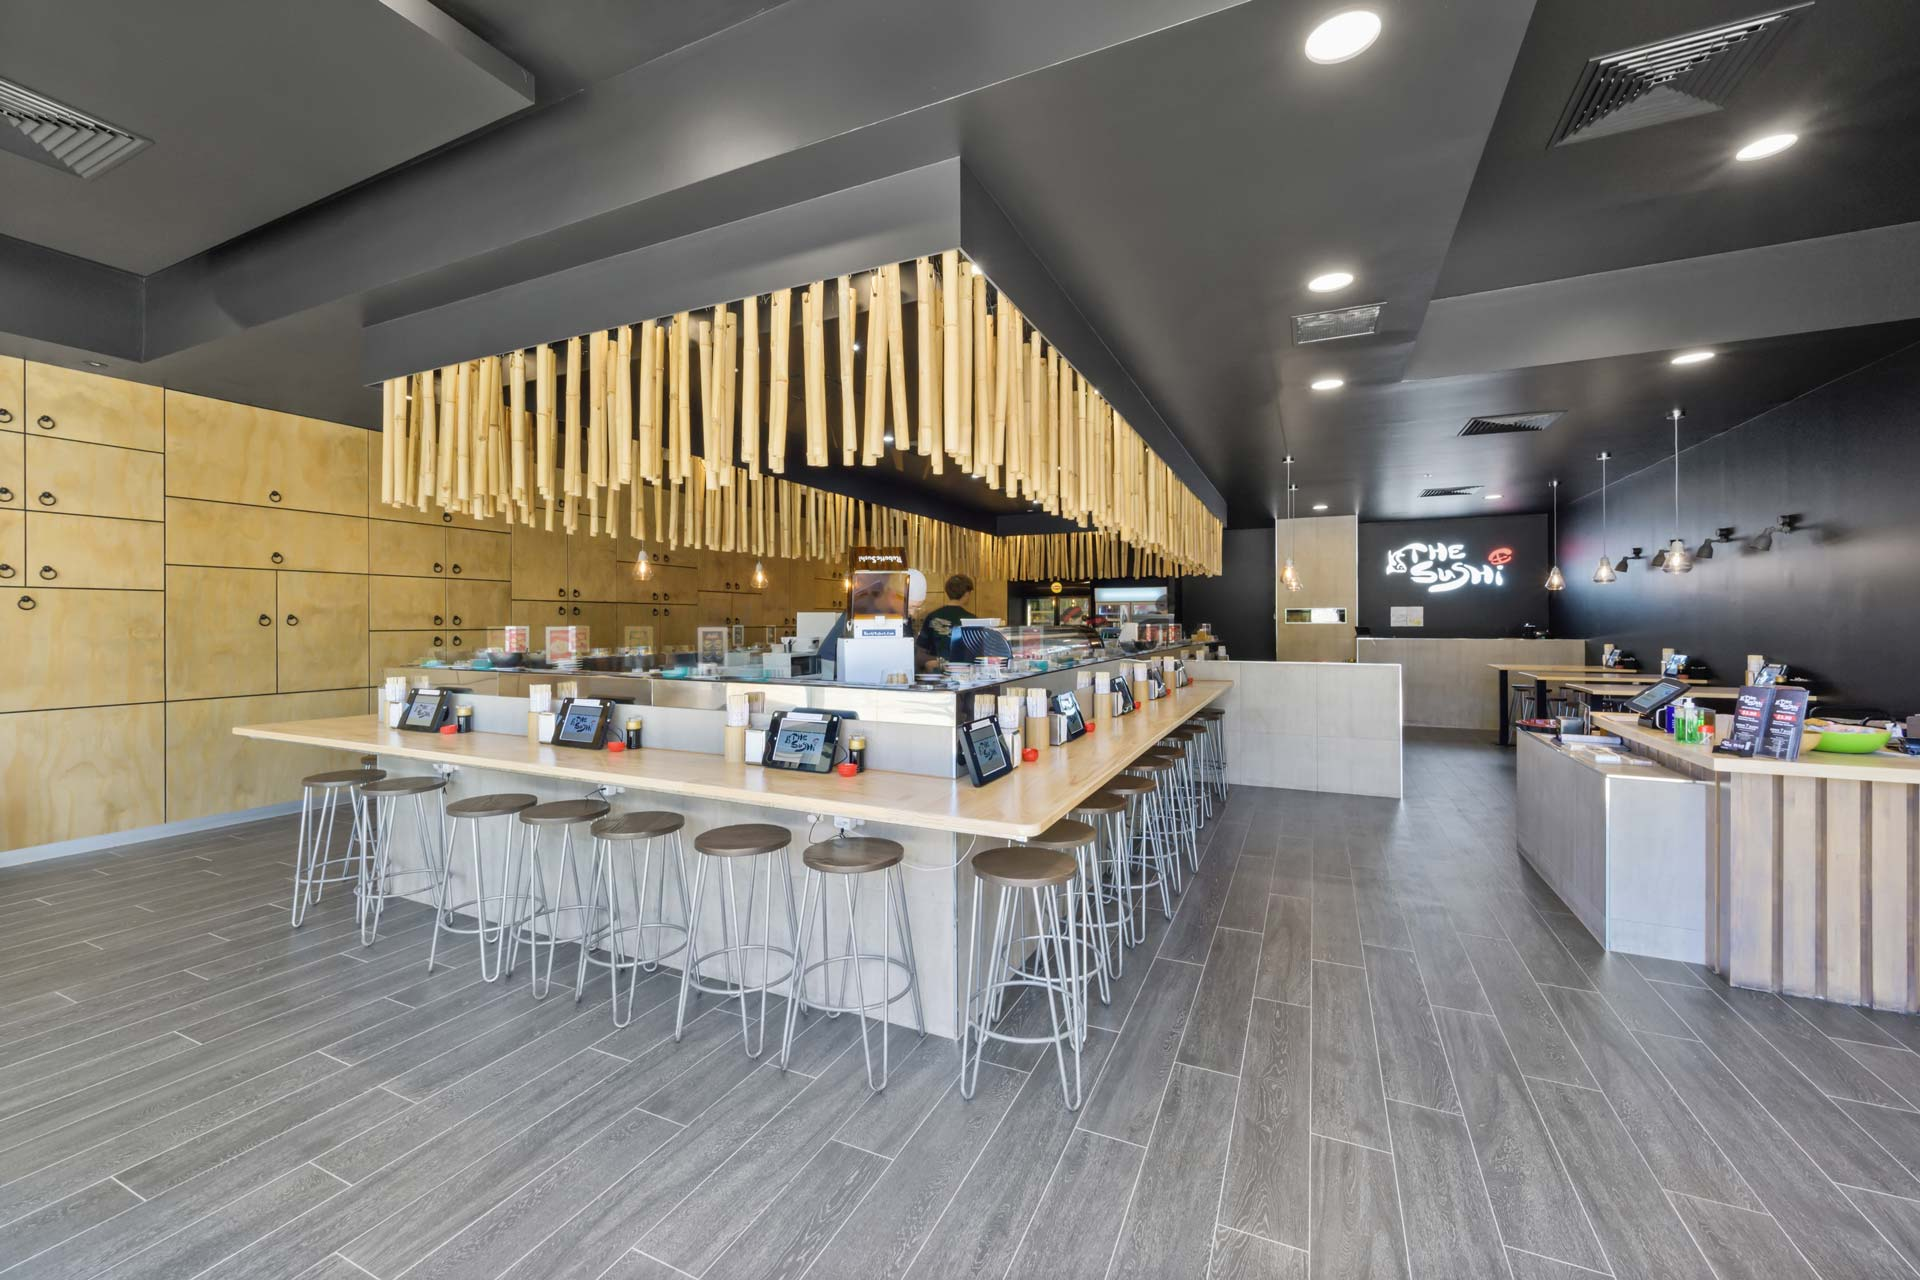 space planning was utilised for this cafe fitout design